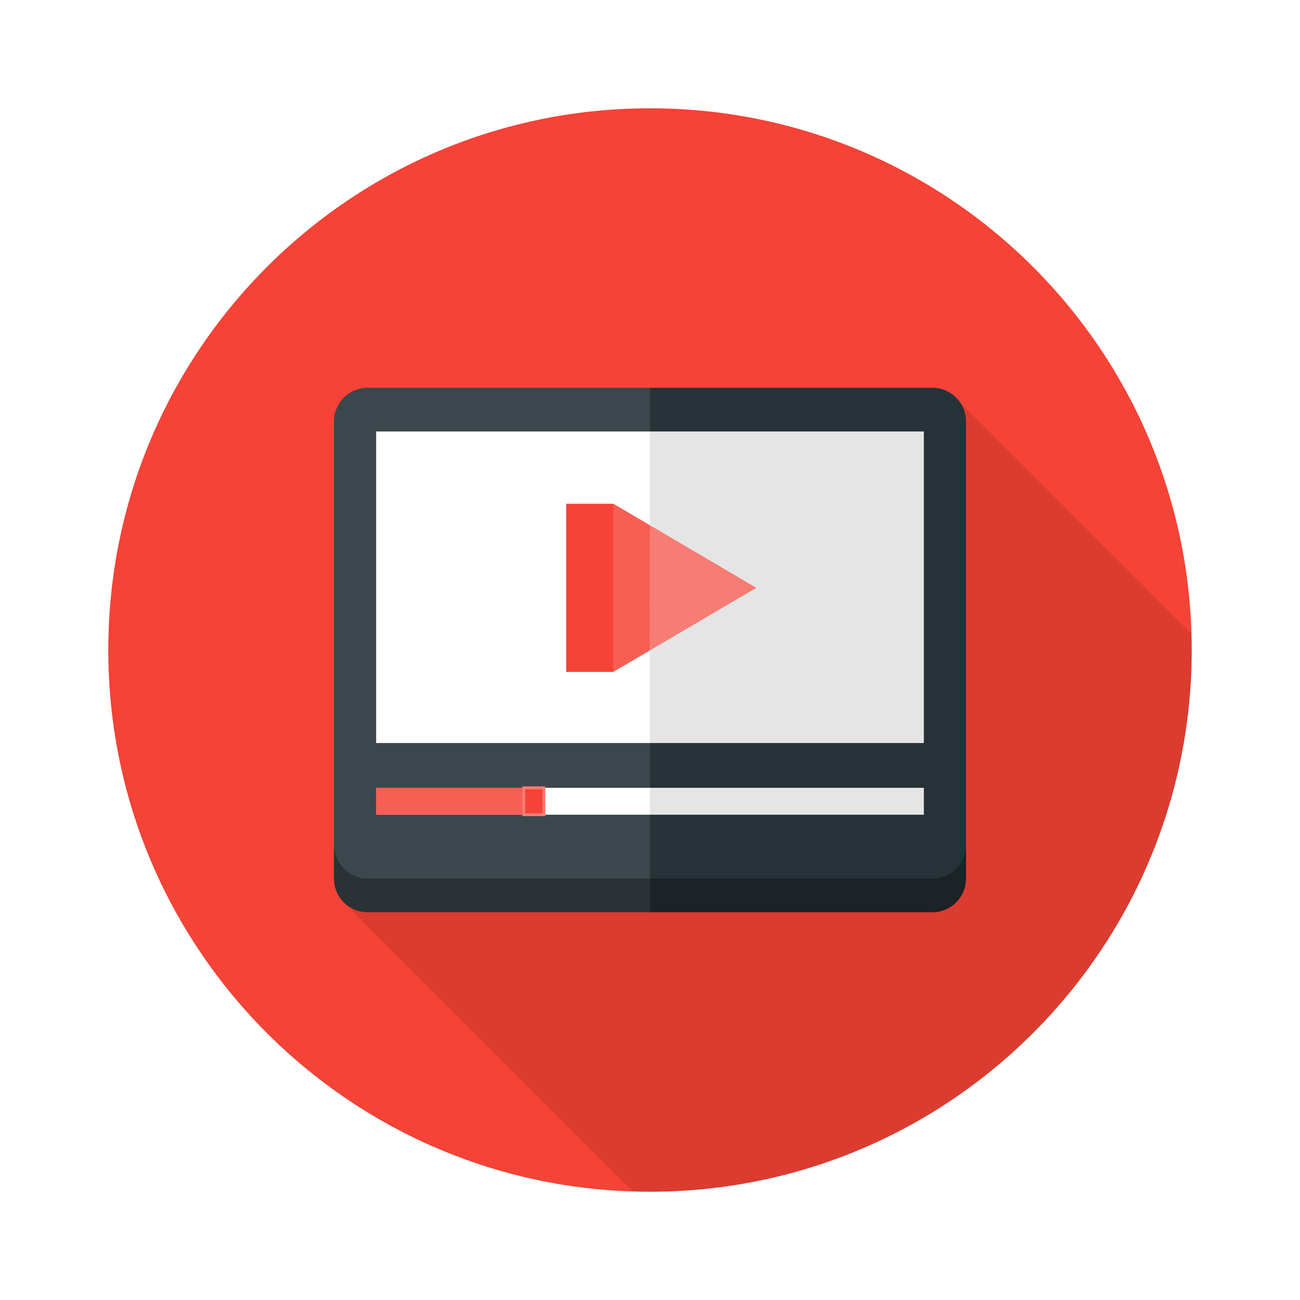 Media play flat circle icon representing video content.